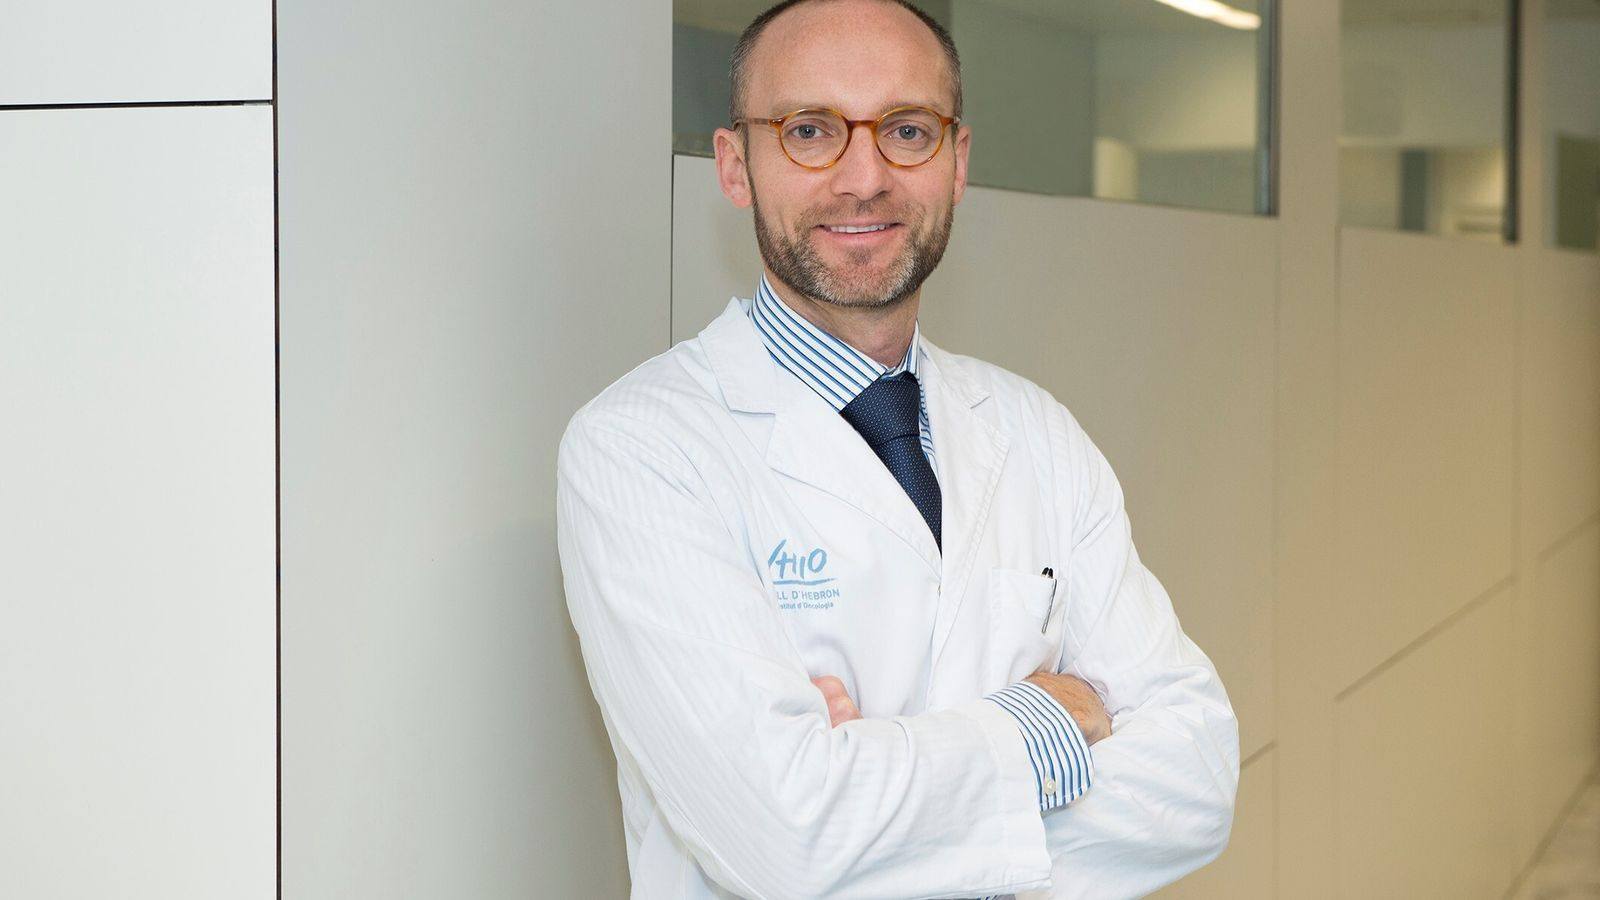 El doctor Rodrigo Dienstmann, investigador principal de l'Oncology Data Science Group del VHIO.